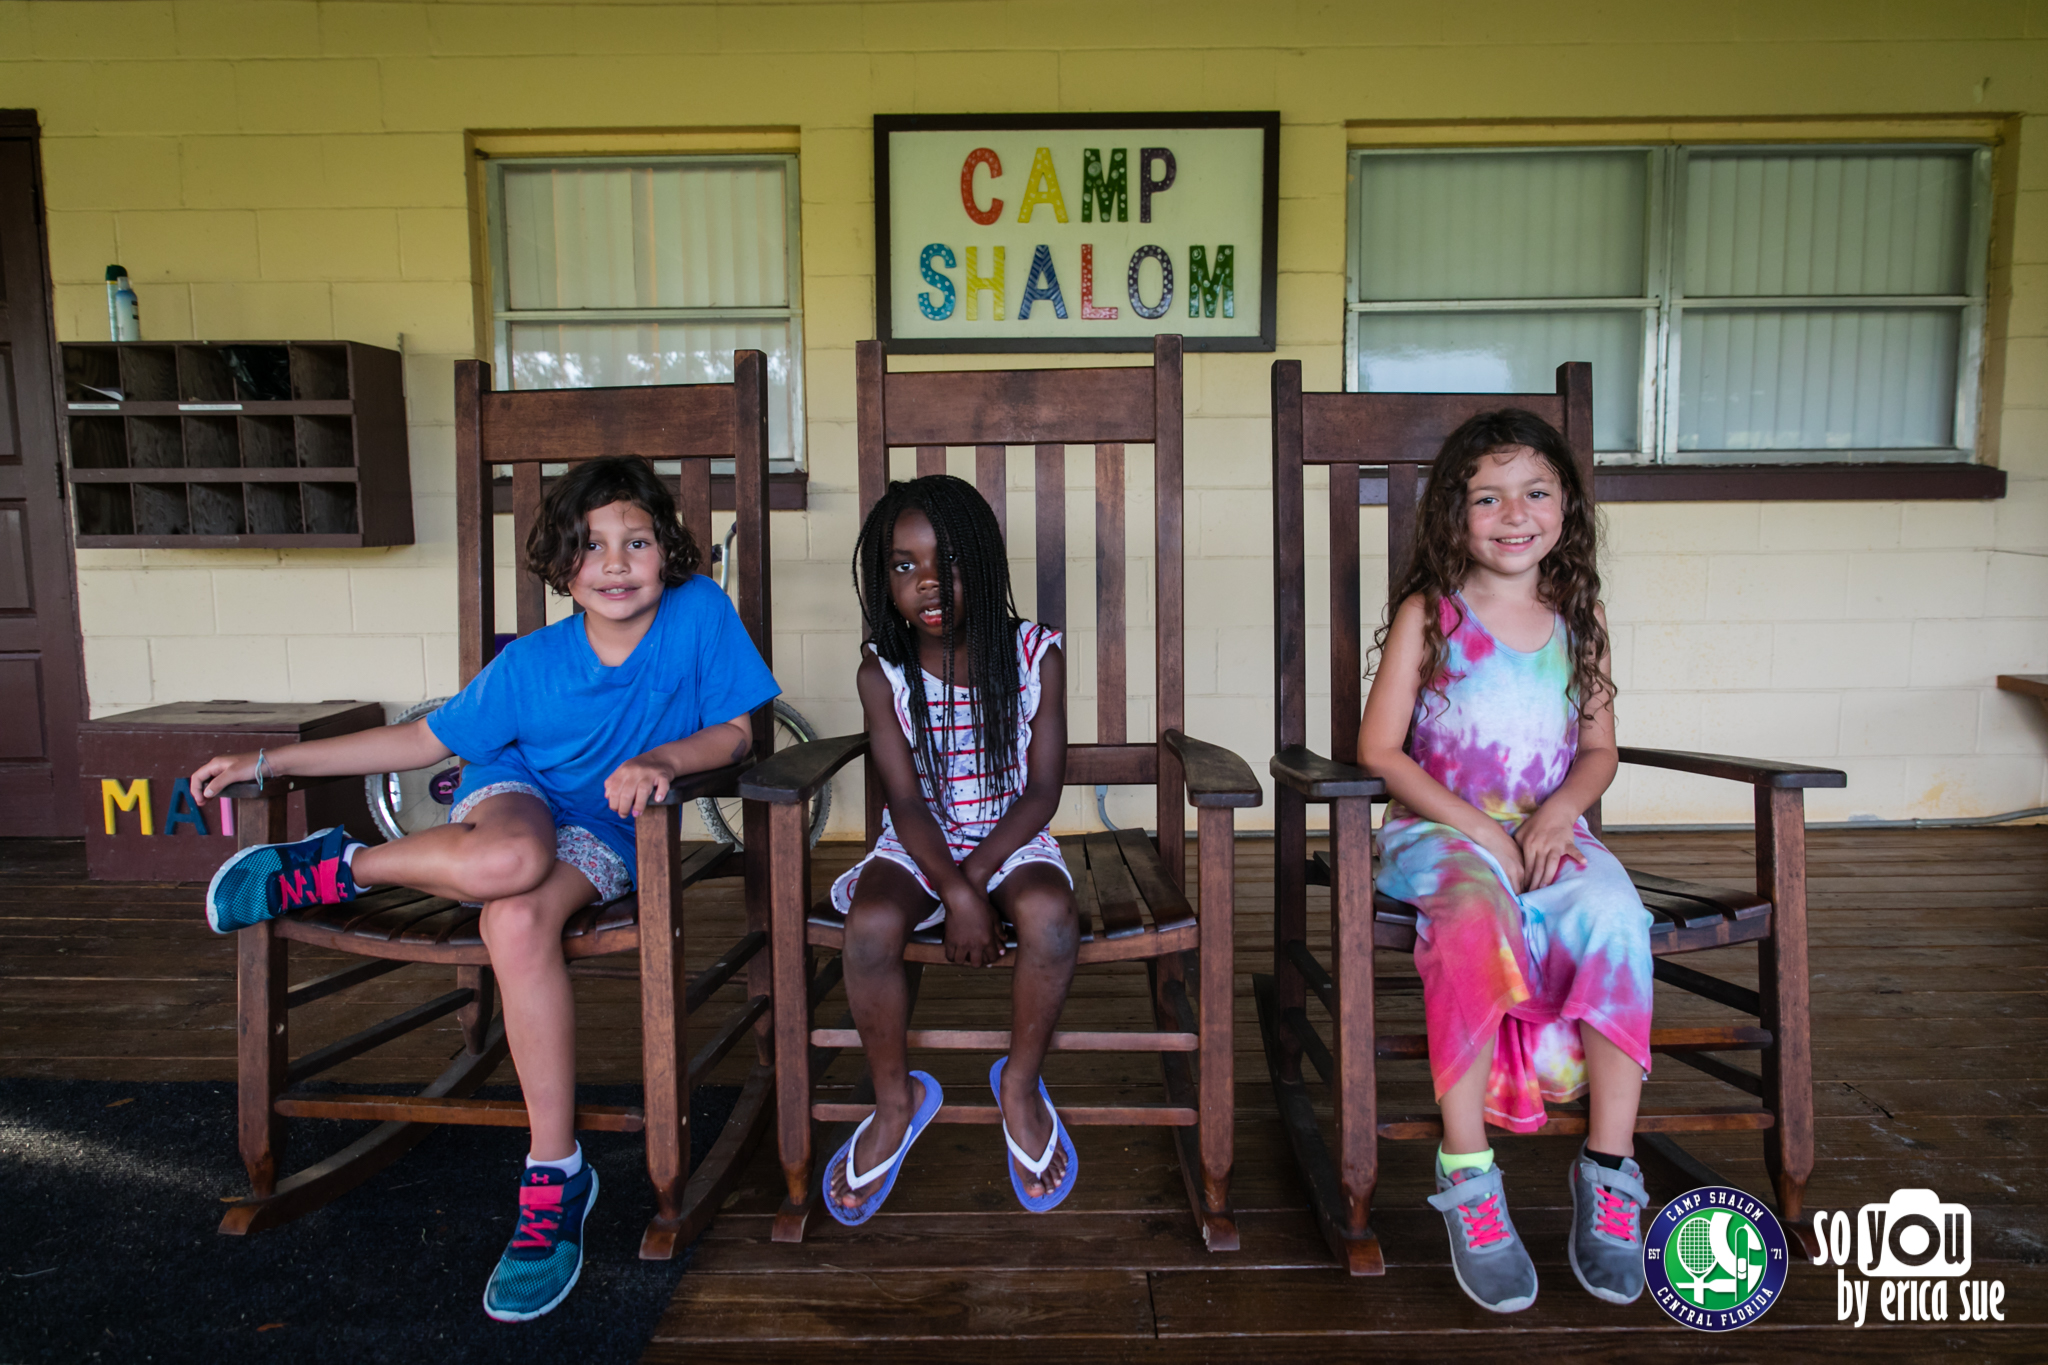 camp-shalom-sleepaway-camp-central-florida-so-you-by-erica-sue-3074.jpg